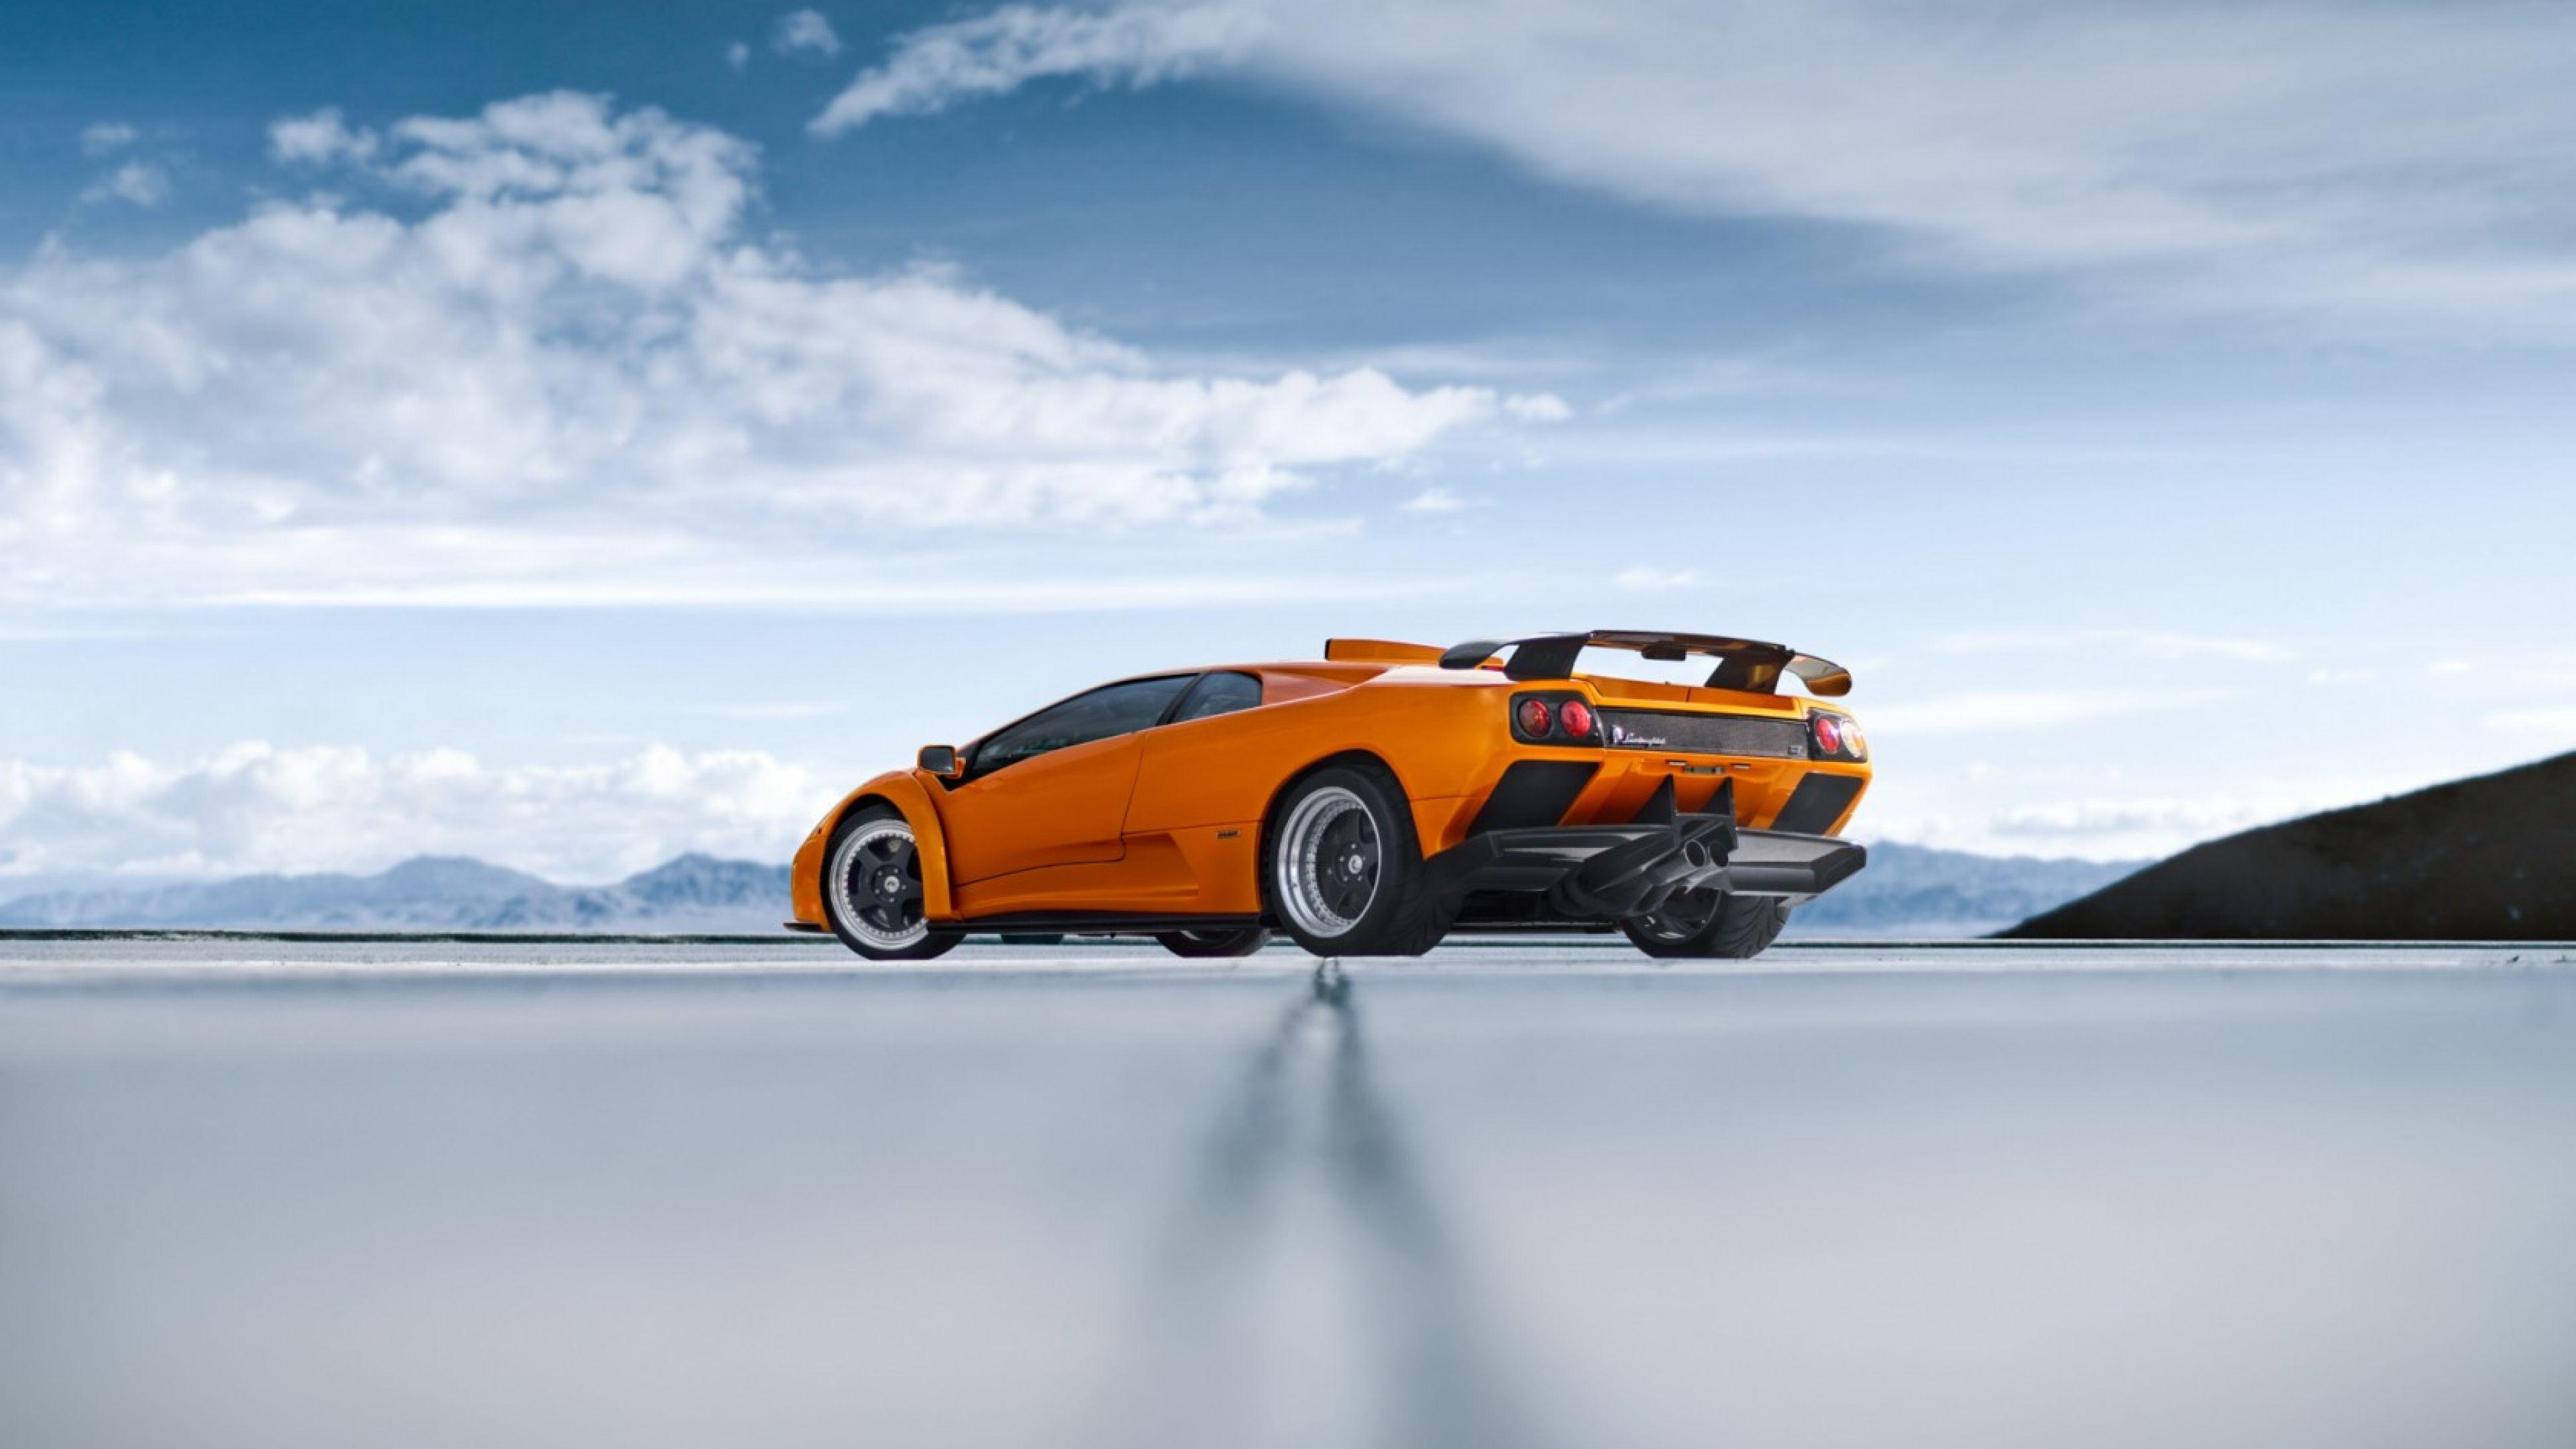 Lamborghini Diablo Wallpapers Wallpaper Cave